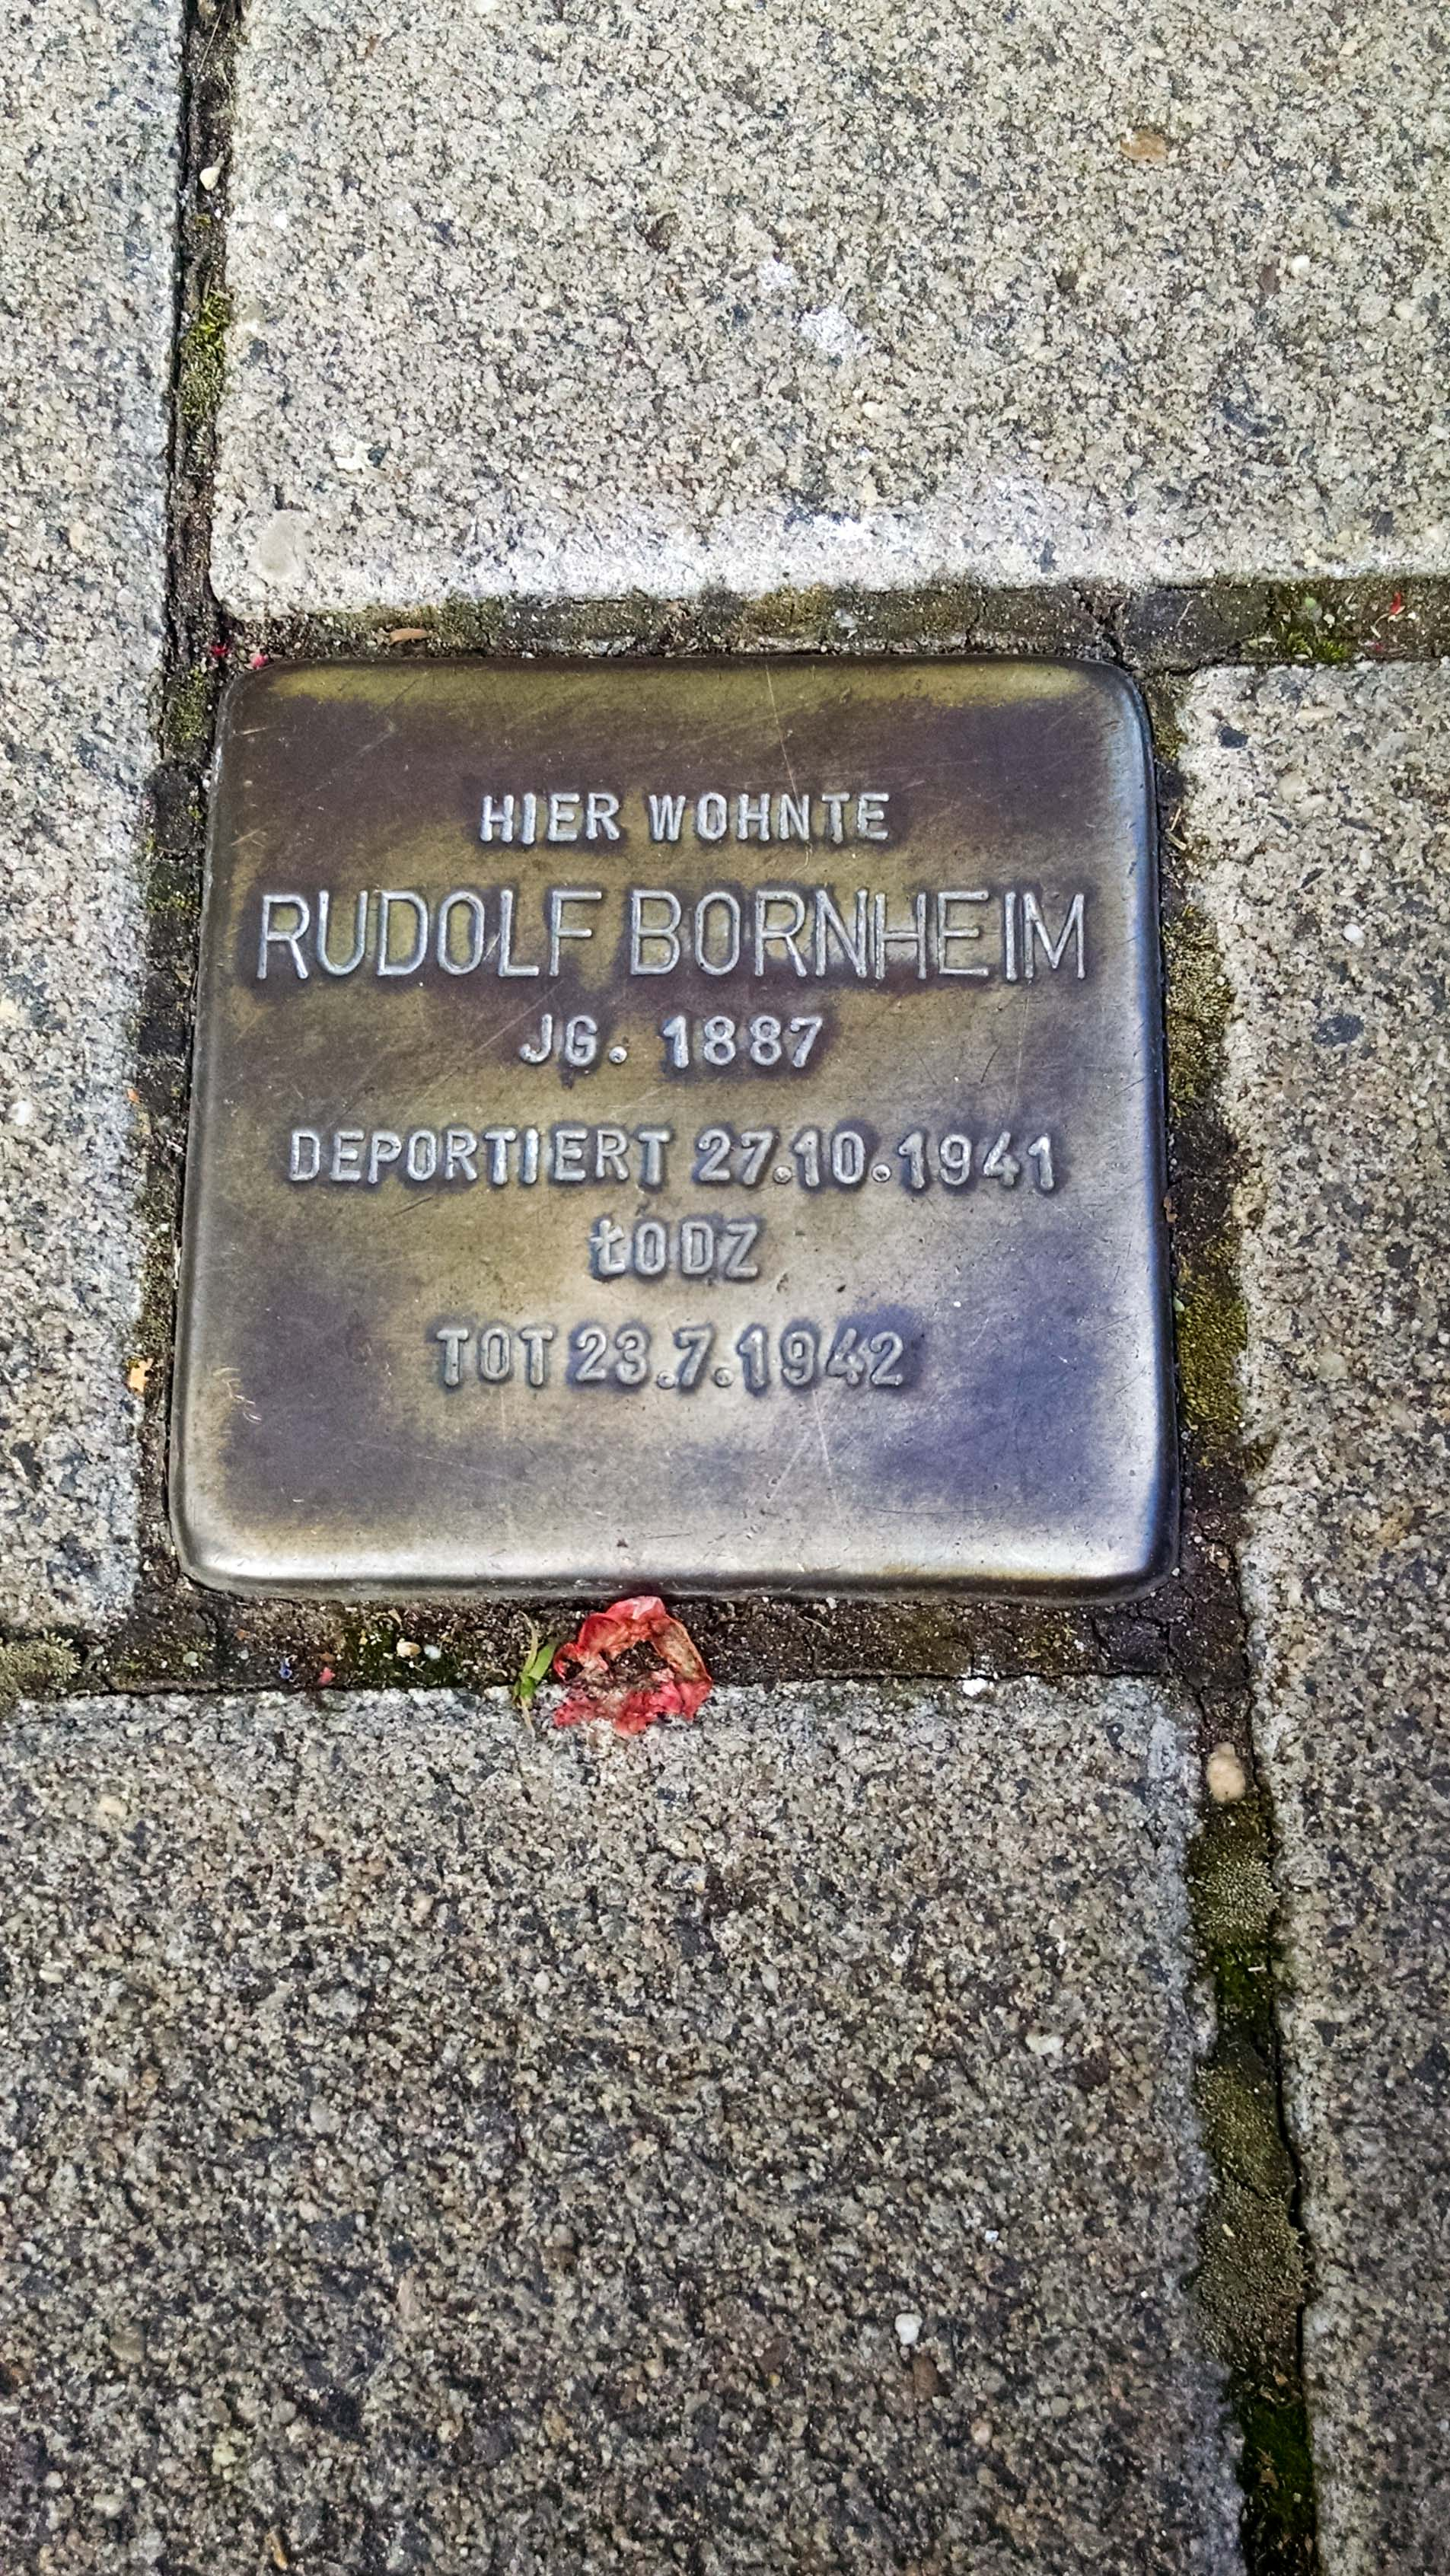 Rudolf was deported in October of 1941 and died in JuertaBly of 1942